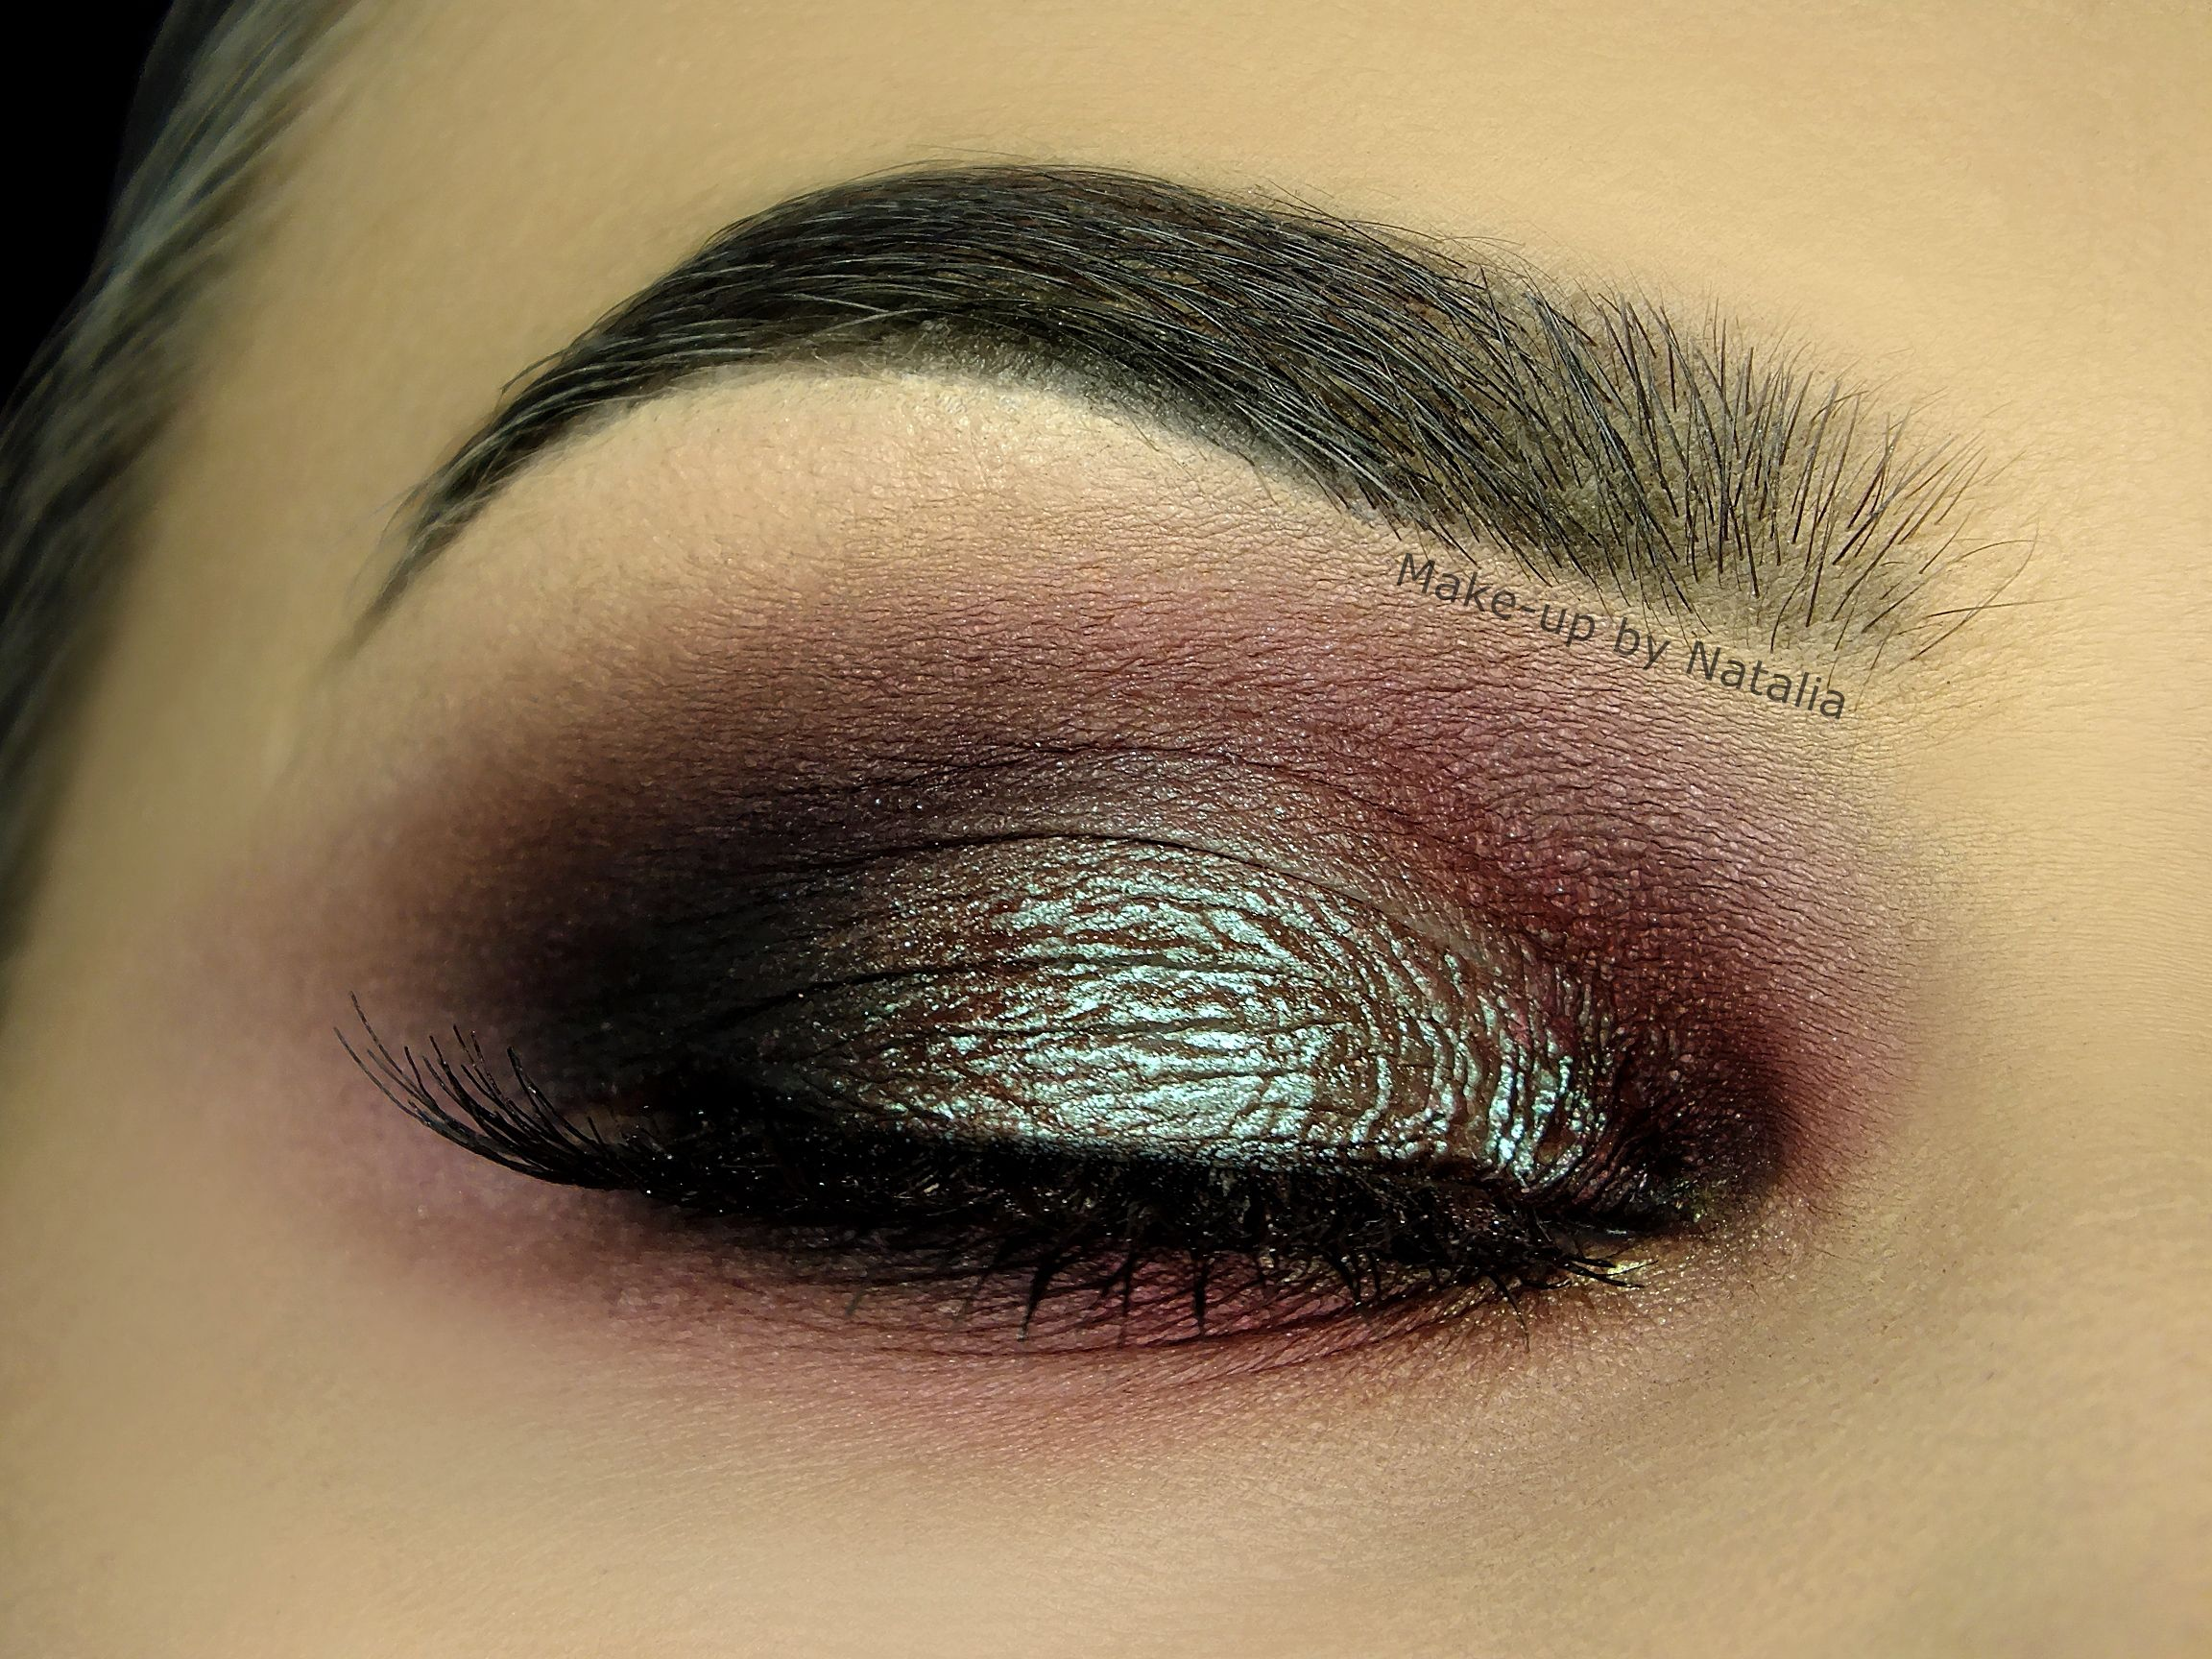 Mac makeup tutorials in store images any tutorial examples insomnia cherry cola makeup tutorial makeup geek oh make insomnia cherry cola makeup tutorial makeup geek baditri Image collections